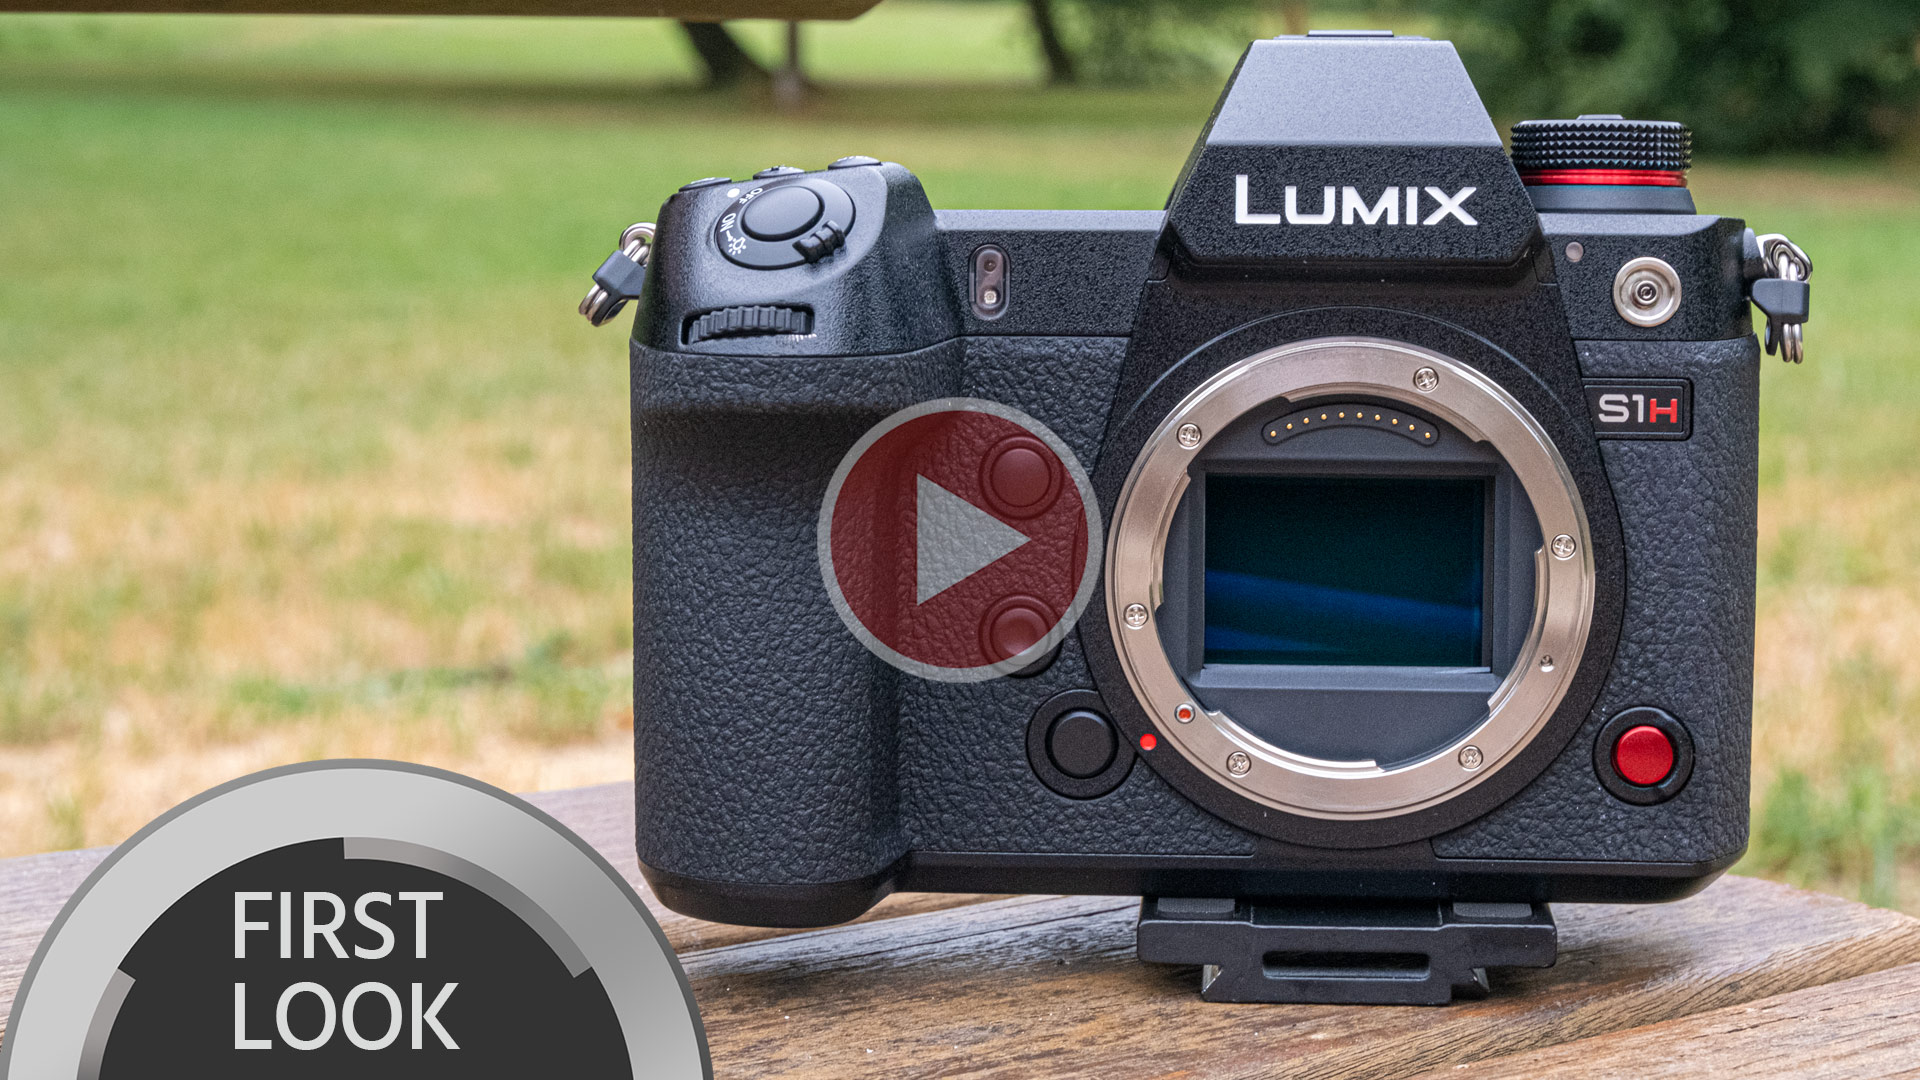 Panasonic LUMIX S1H - Full Specs & Details, First Look at